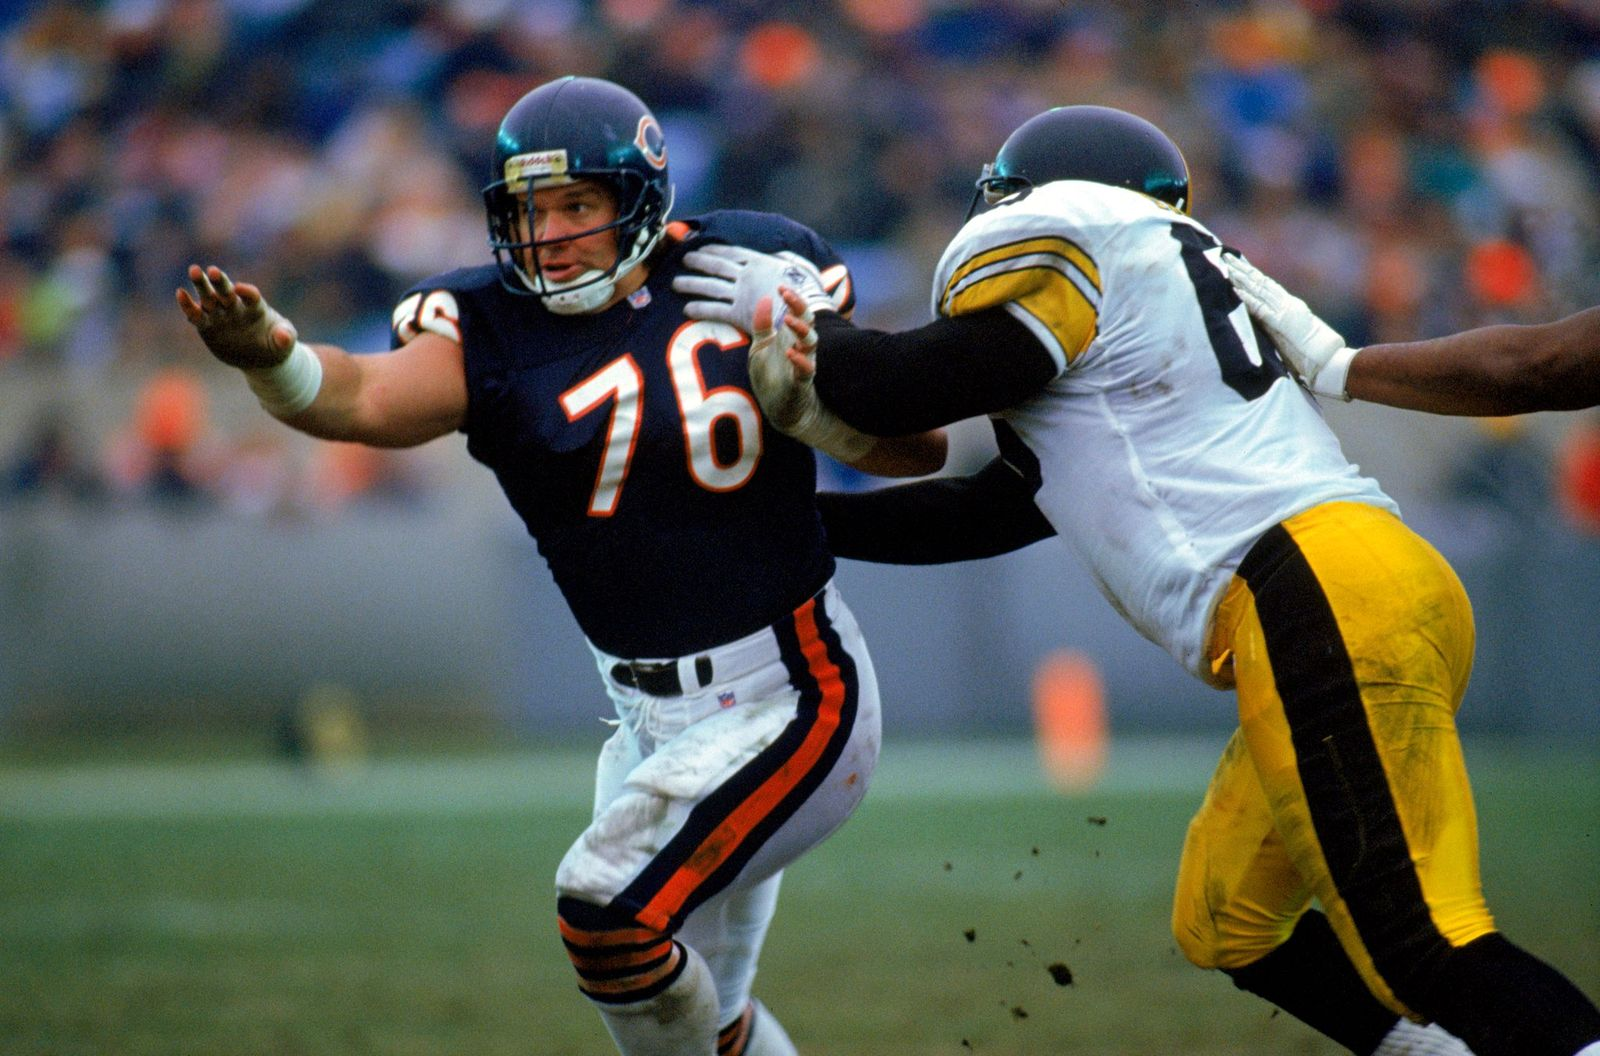 Steve McMichael playing during the game against the Pittsburgh Steelers on December 13, 1992 in Chicago, Illinois. | Getty Images